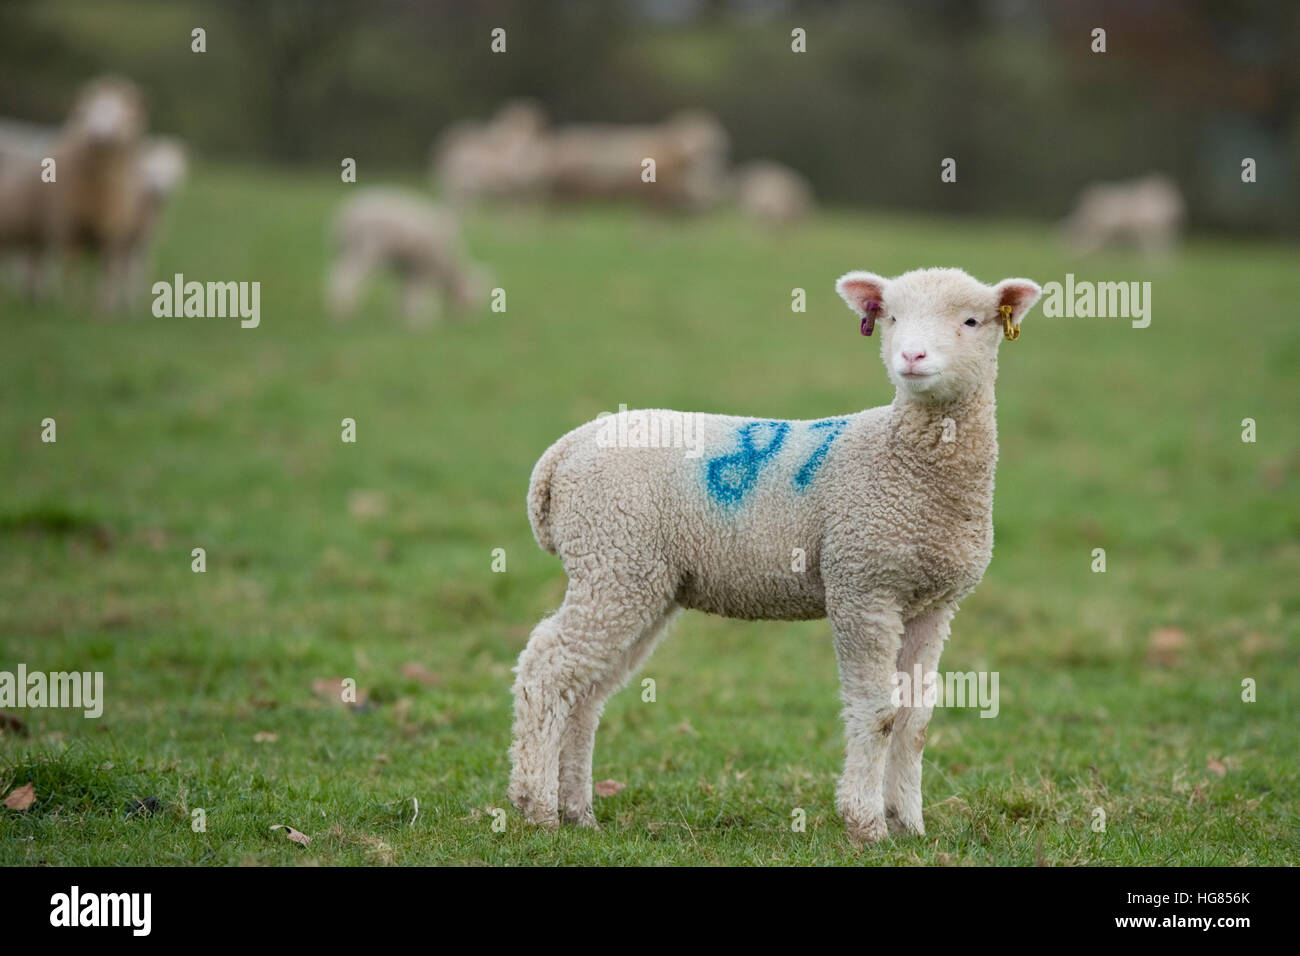 lamb in field of sheep - Stock Image